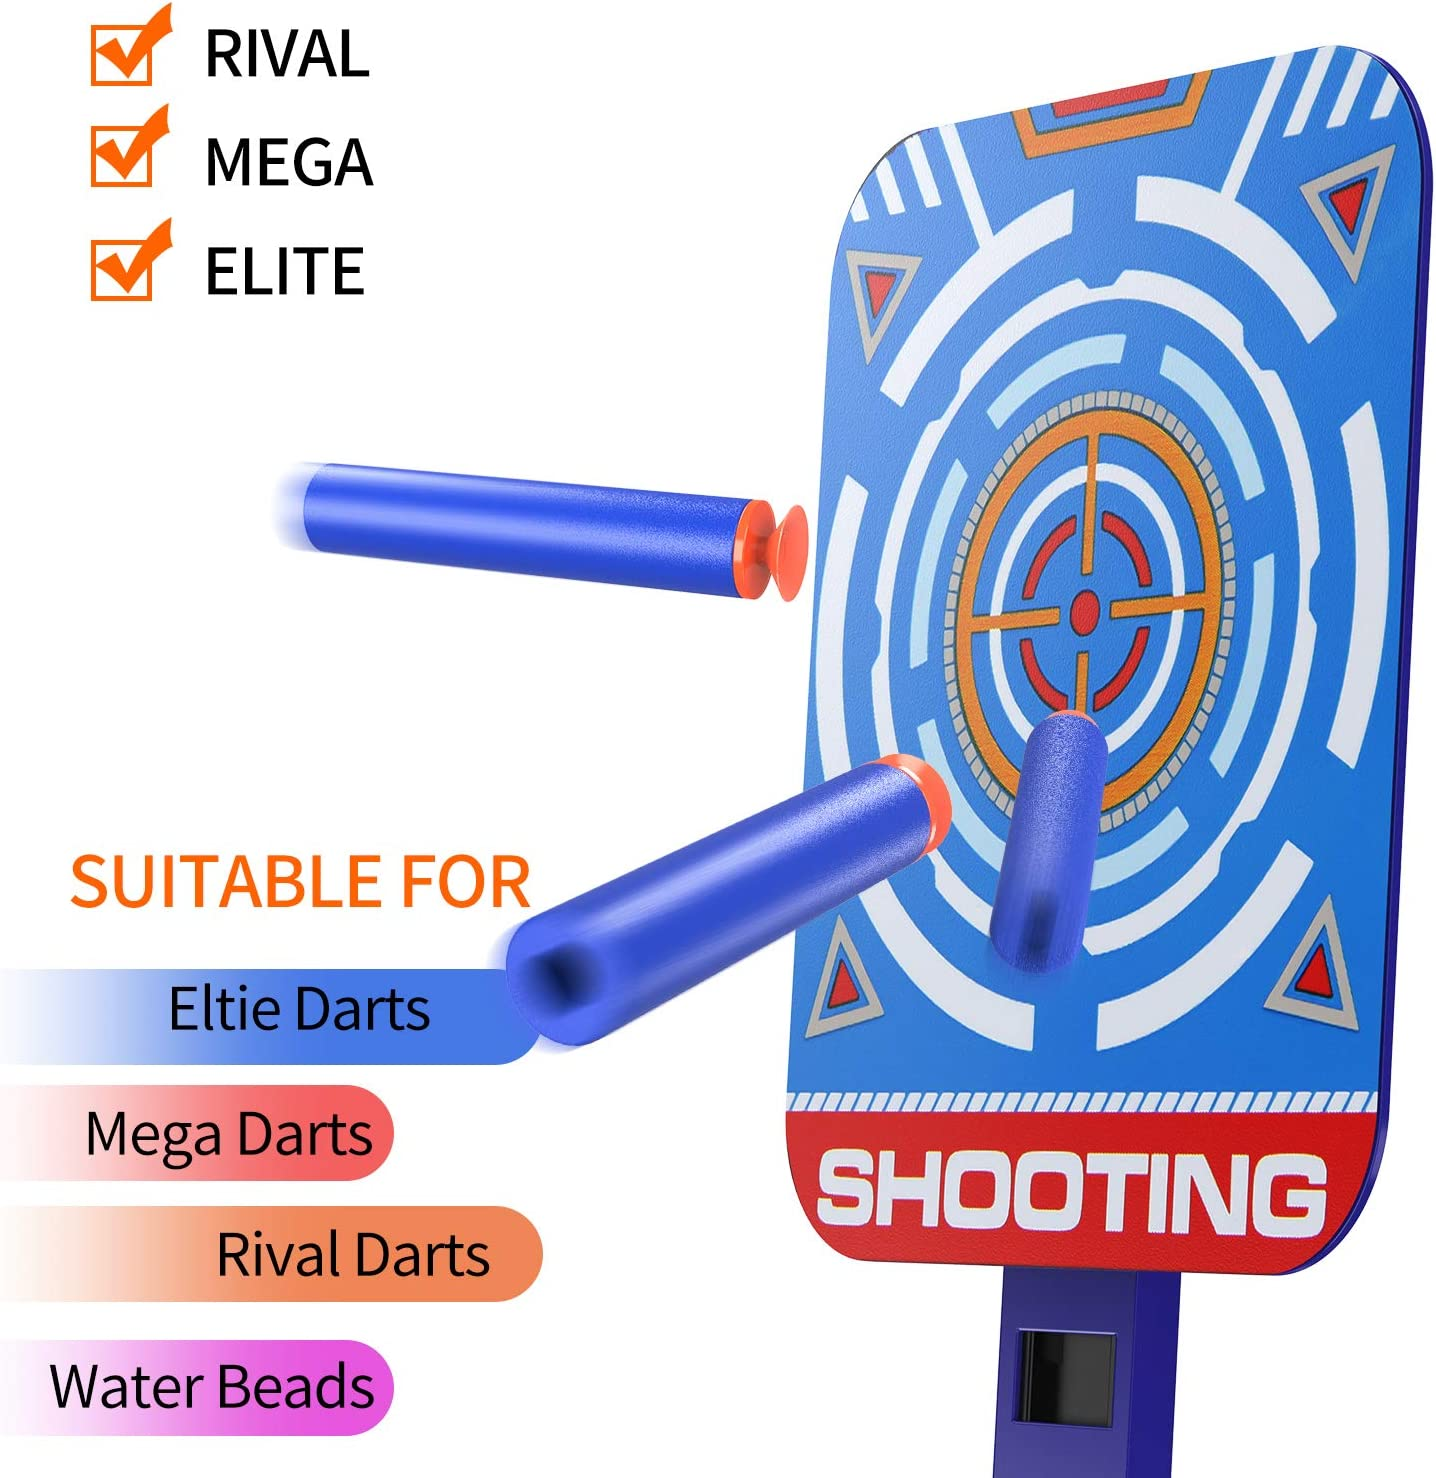 DG-Direct Upgraded Electric Scoring Auto Reset Shooting Digital Target for Nerf Guns Blaster Elite//Mega//Rival Series with 20 Pcs Refill Darts and 1 Hand Wrist Band and 1 Alternate Scoring Target.